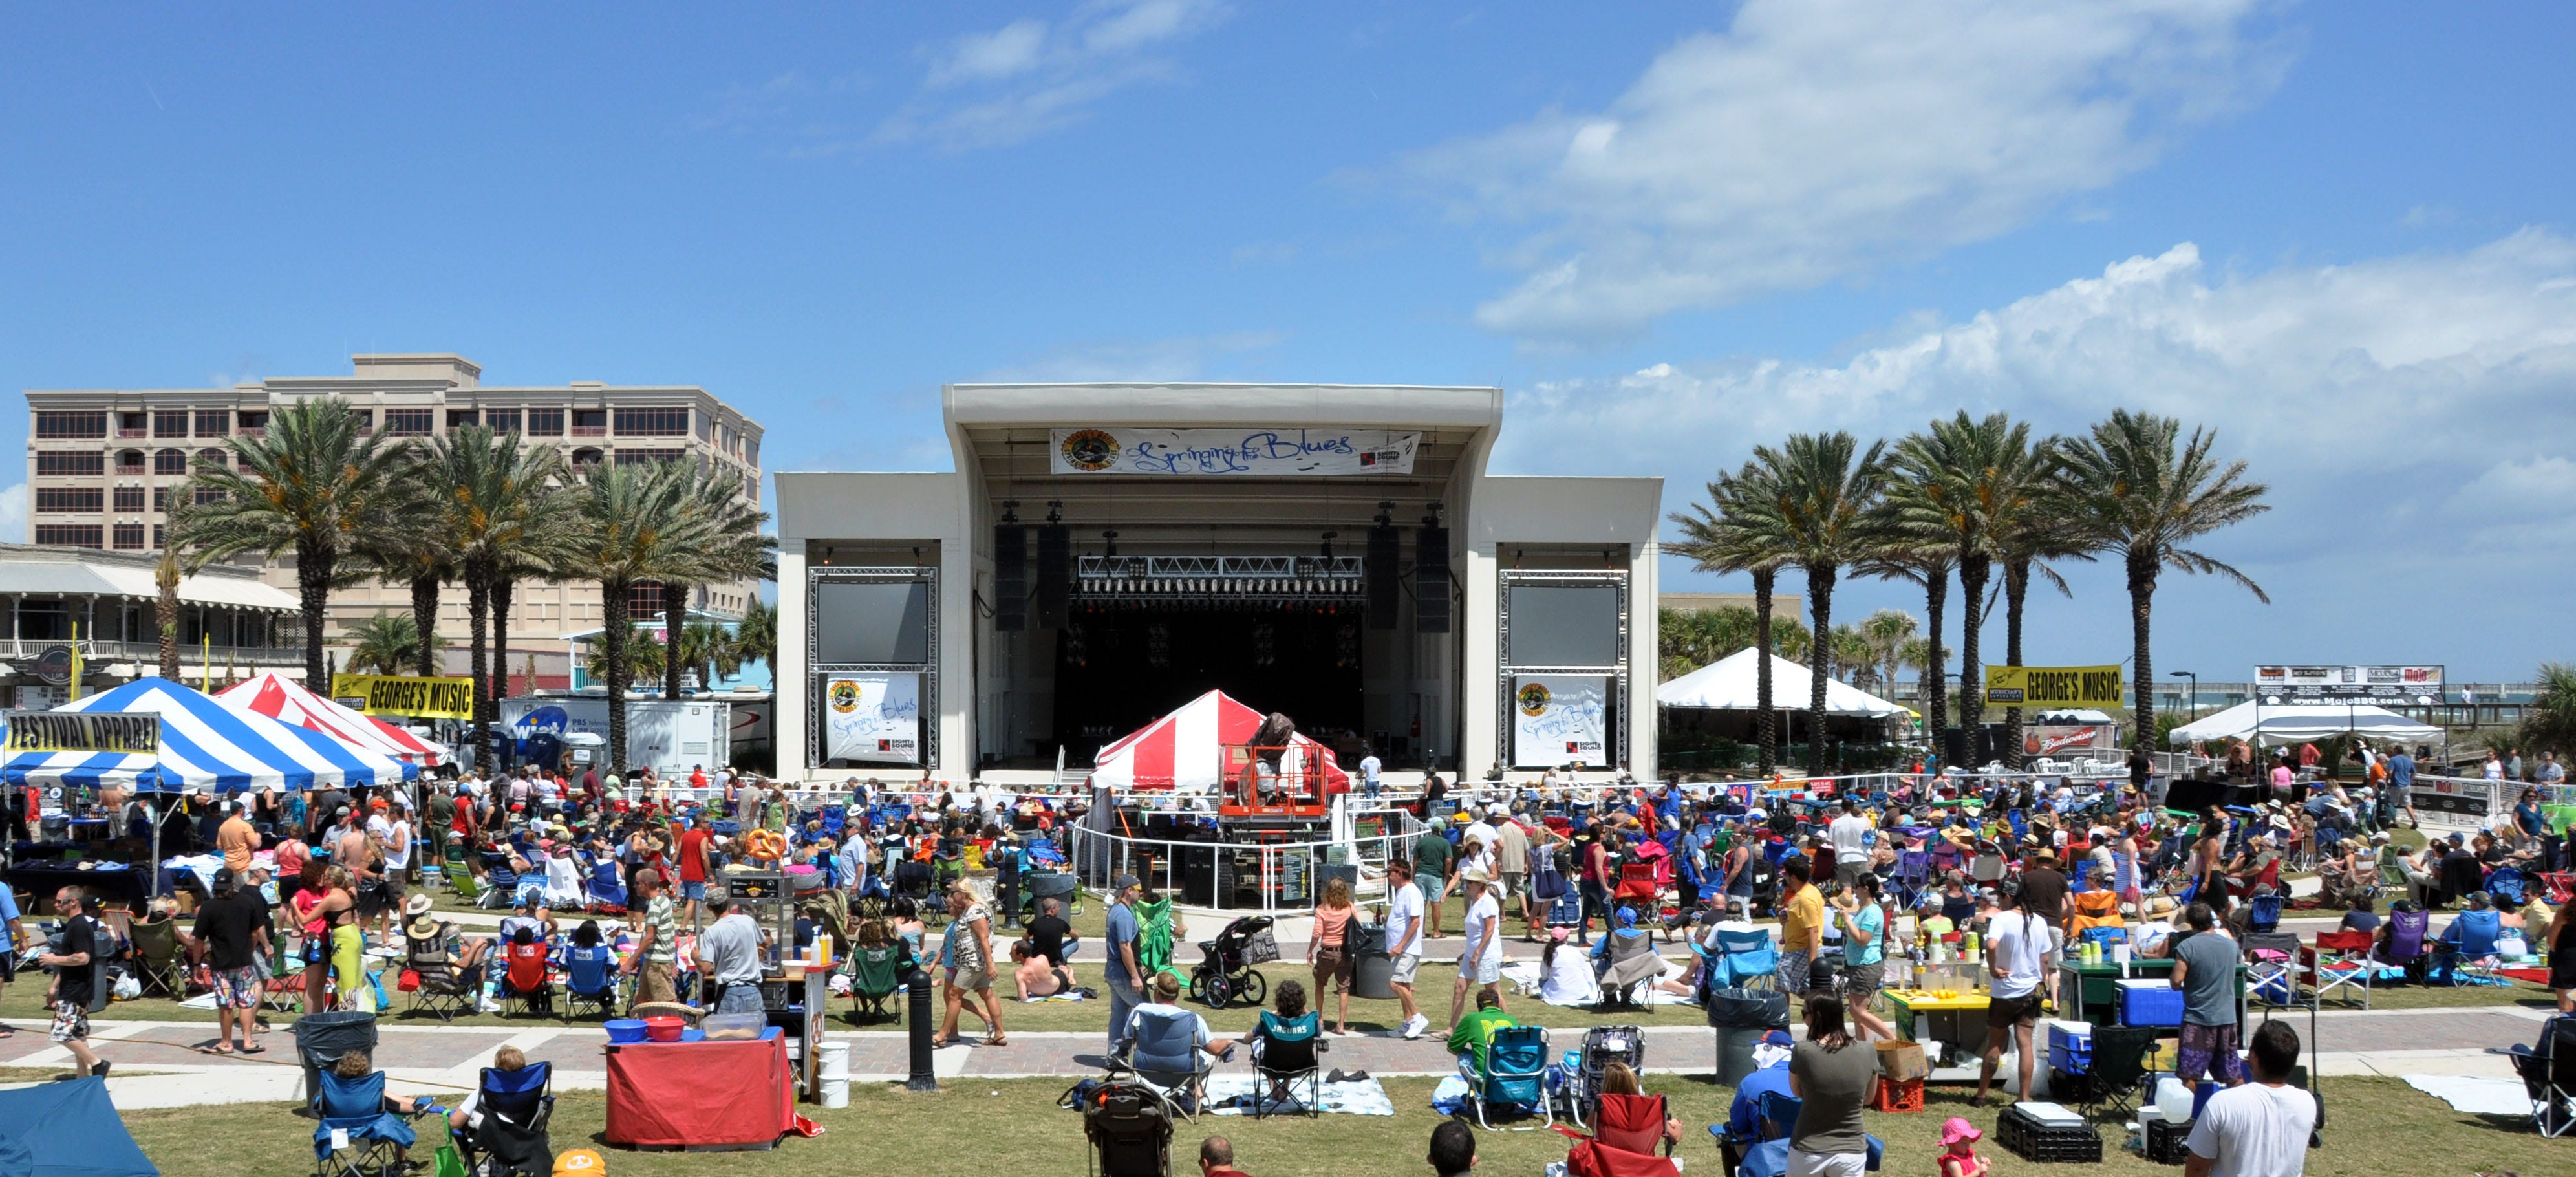 Springing the Blues plans April music festival in Jacksonville Beach